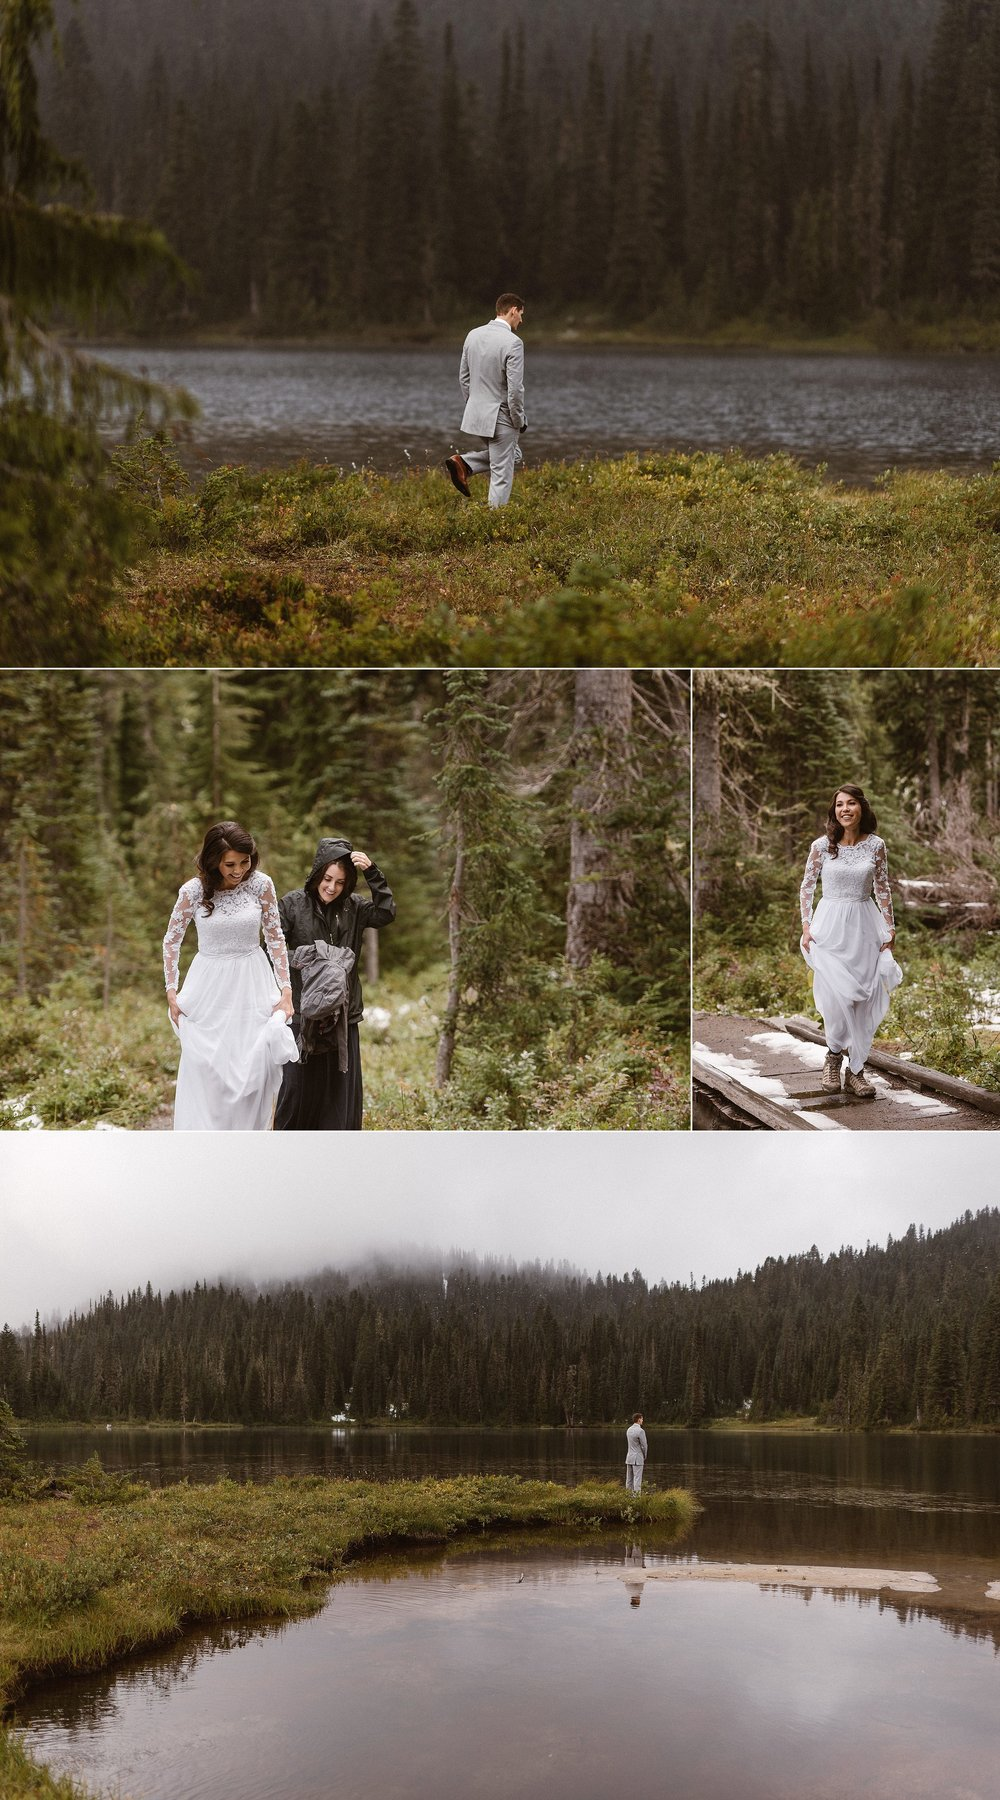 Resa walked out of the woods in the mist with her maid of honor. She saw her handsome groom waiting patiently for her in the clearing of Mount Rainier National Park in Washington where they would soon say their vows in a private ceremony attended only by their closest friends and intimate wedding photographer Maddie Mae.